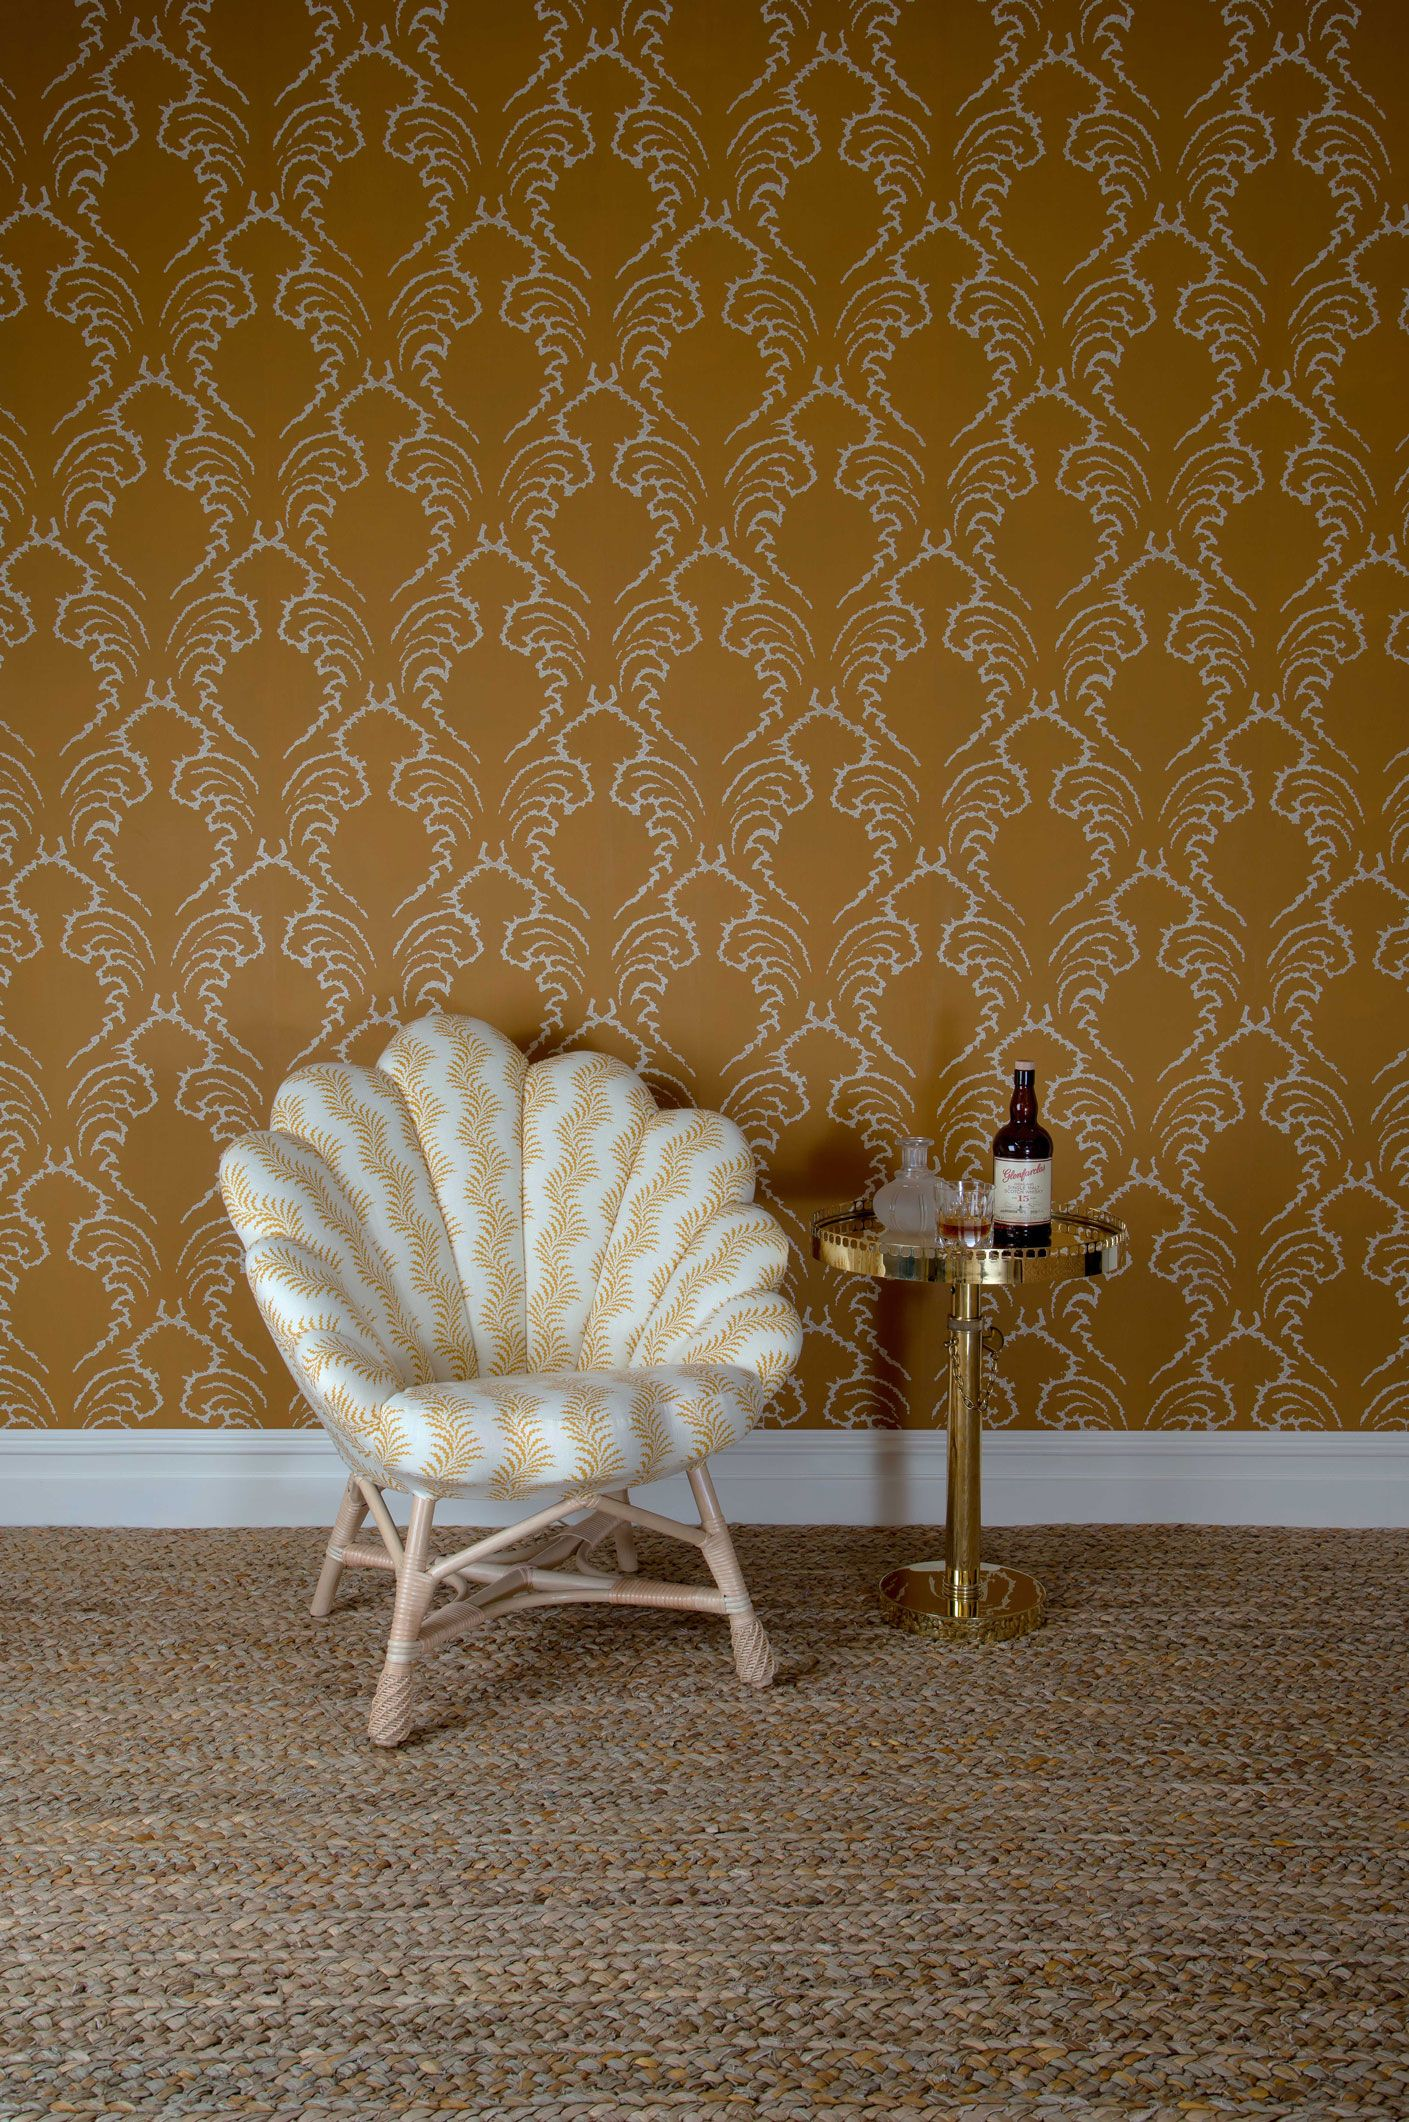 The Upholstered Venus Chair The Carafe Table and Pineapple Frond 1409x2122